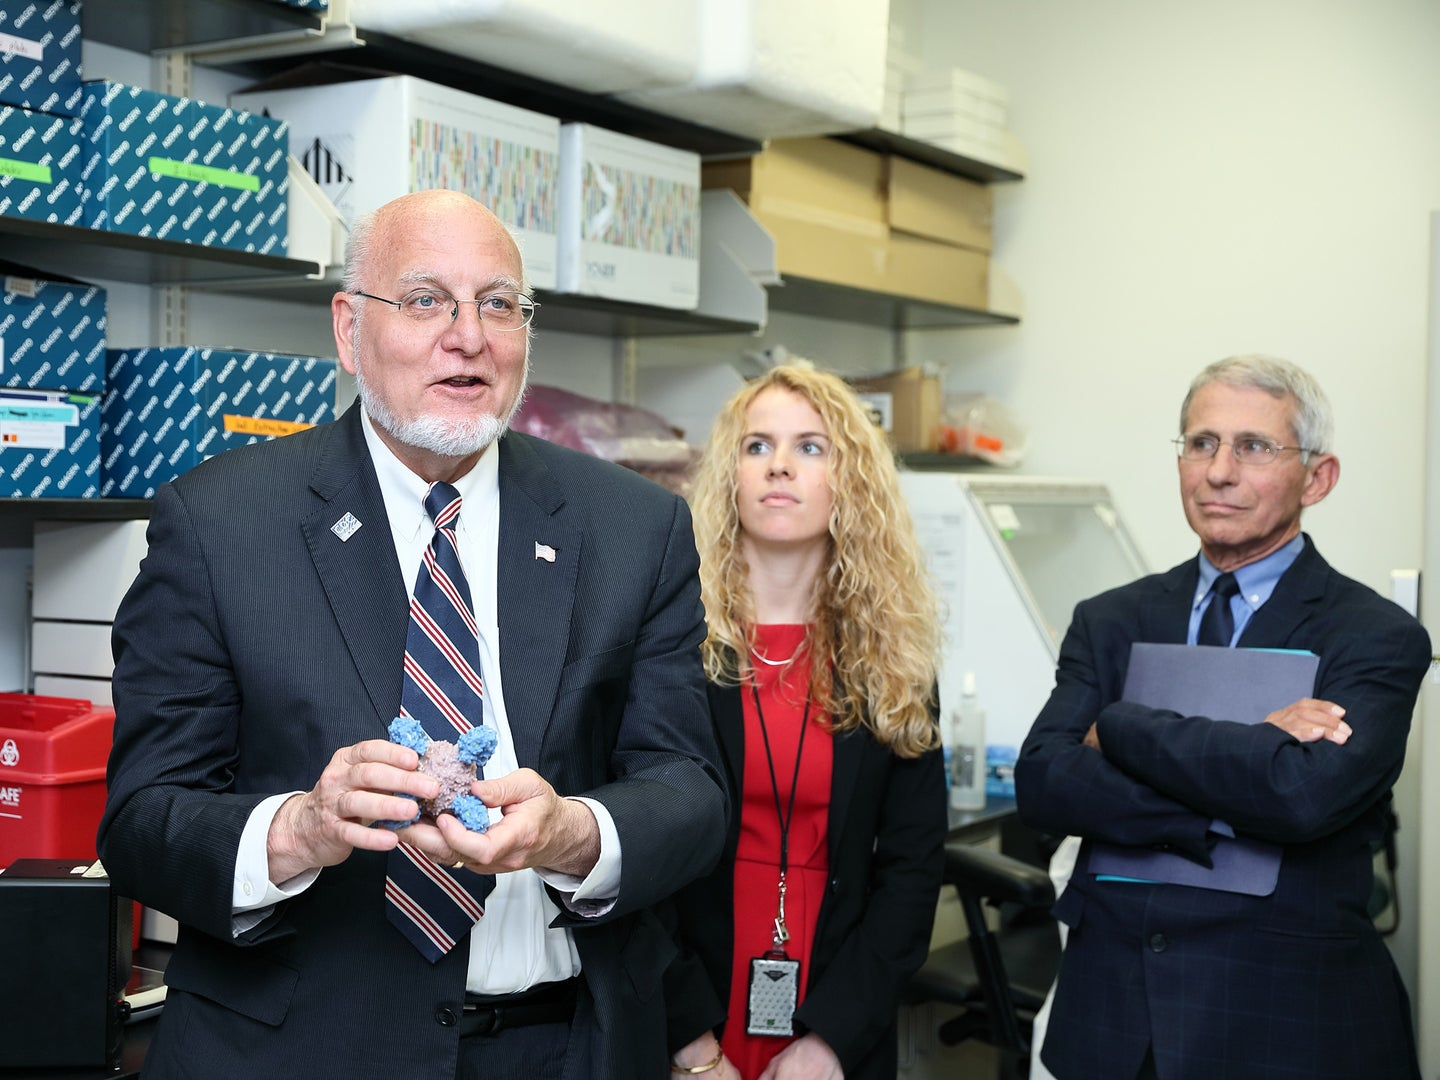 CDC Director Robert Redfield and National Institute of Allergy and Infectious Diseases Director Anthony Fauci in 2018